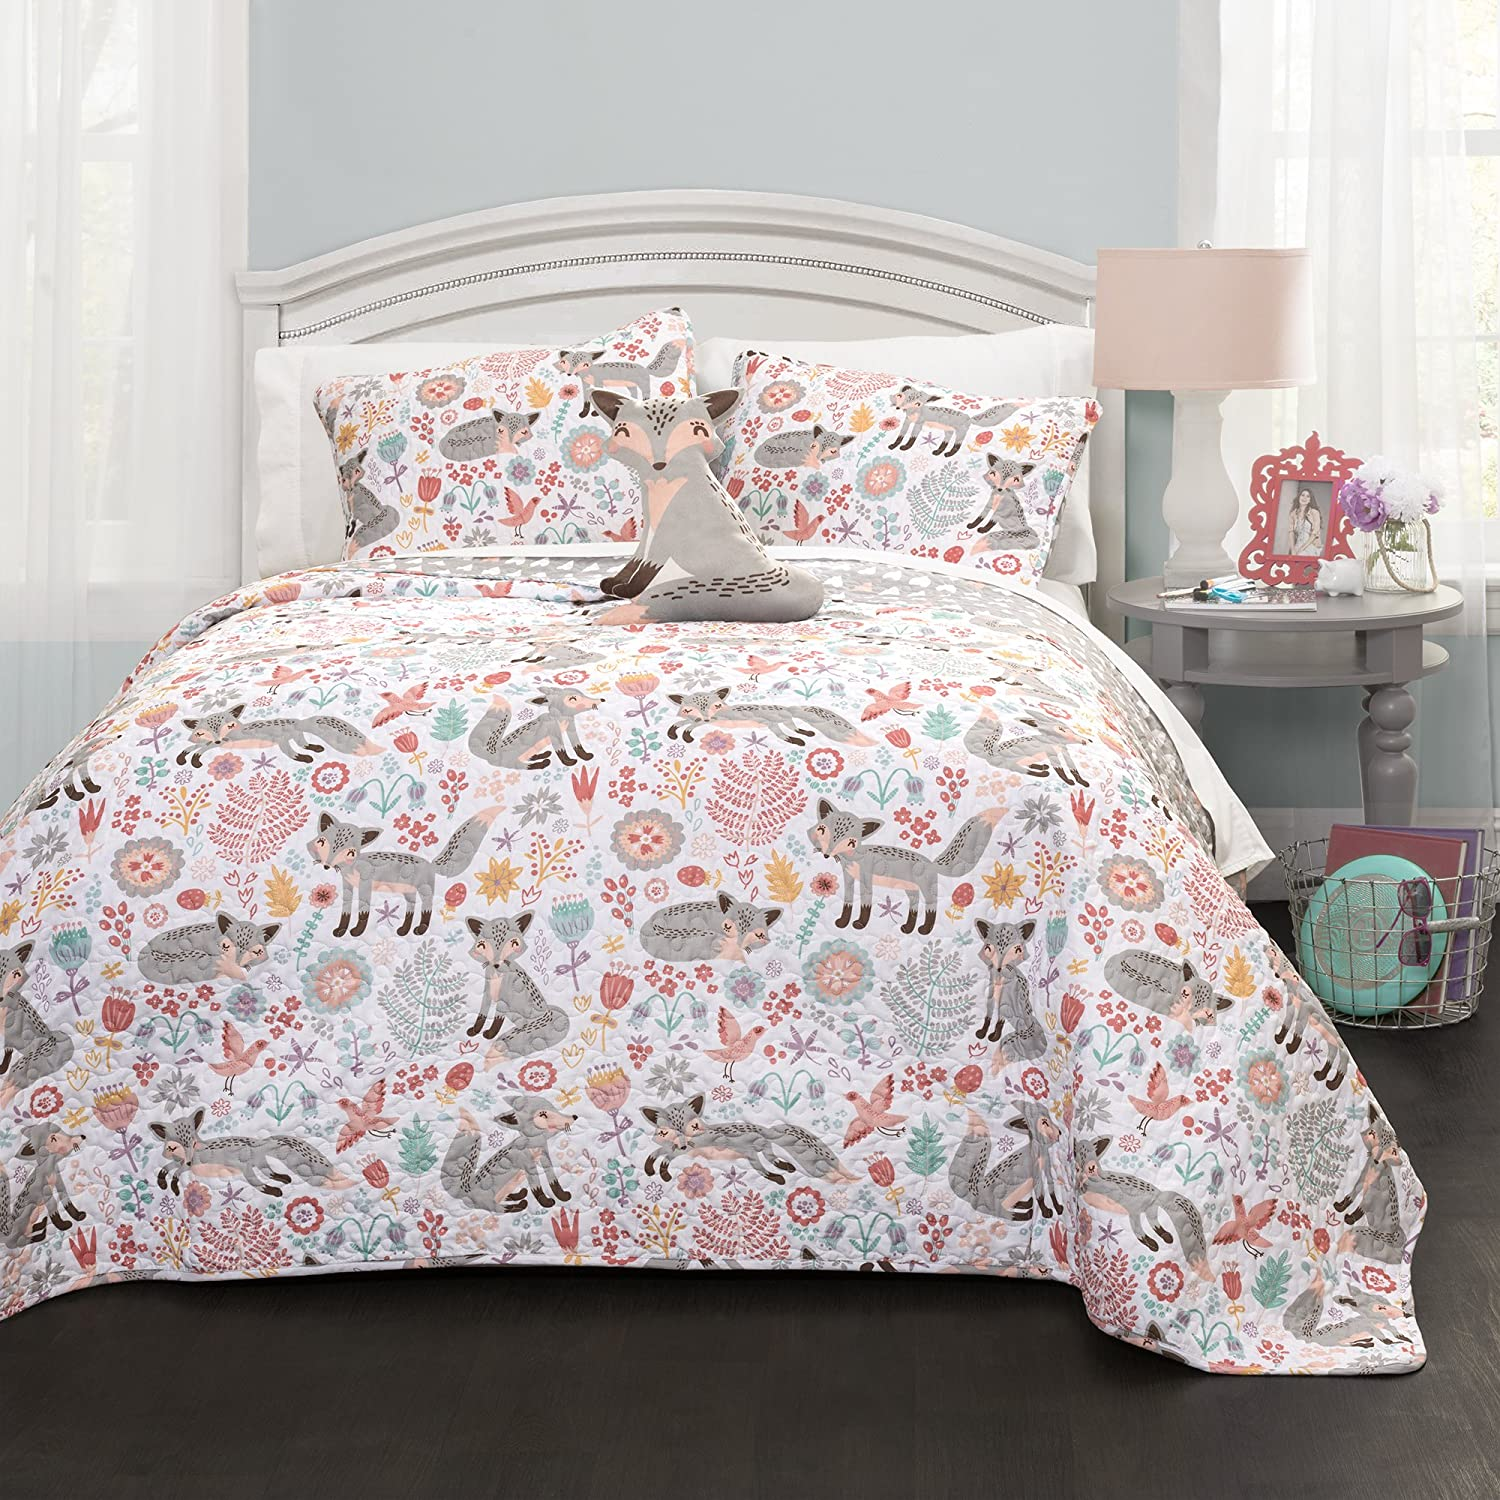 Lush Decor 3 Piece Pixie Fox Quilt Set, Twin, Gray/Pink